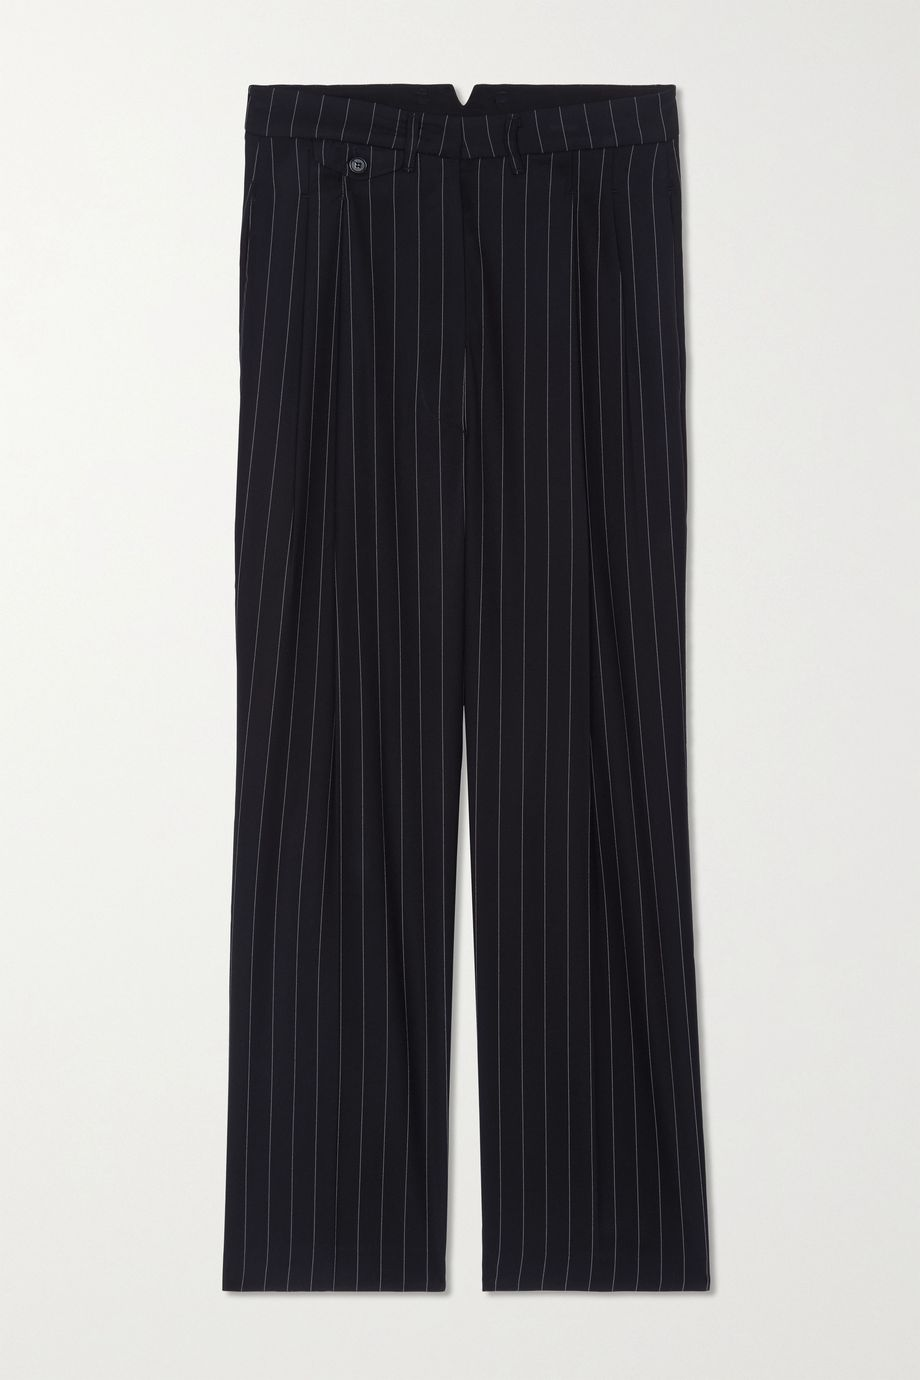 Frankie Shop Pernille striped woven straight-leg pants